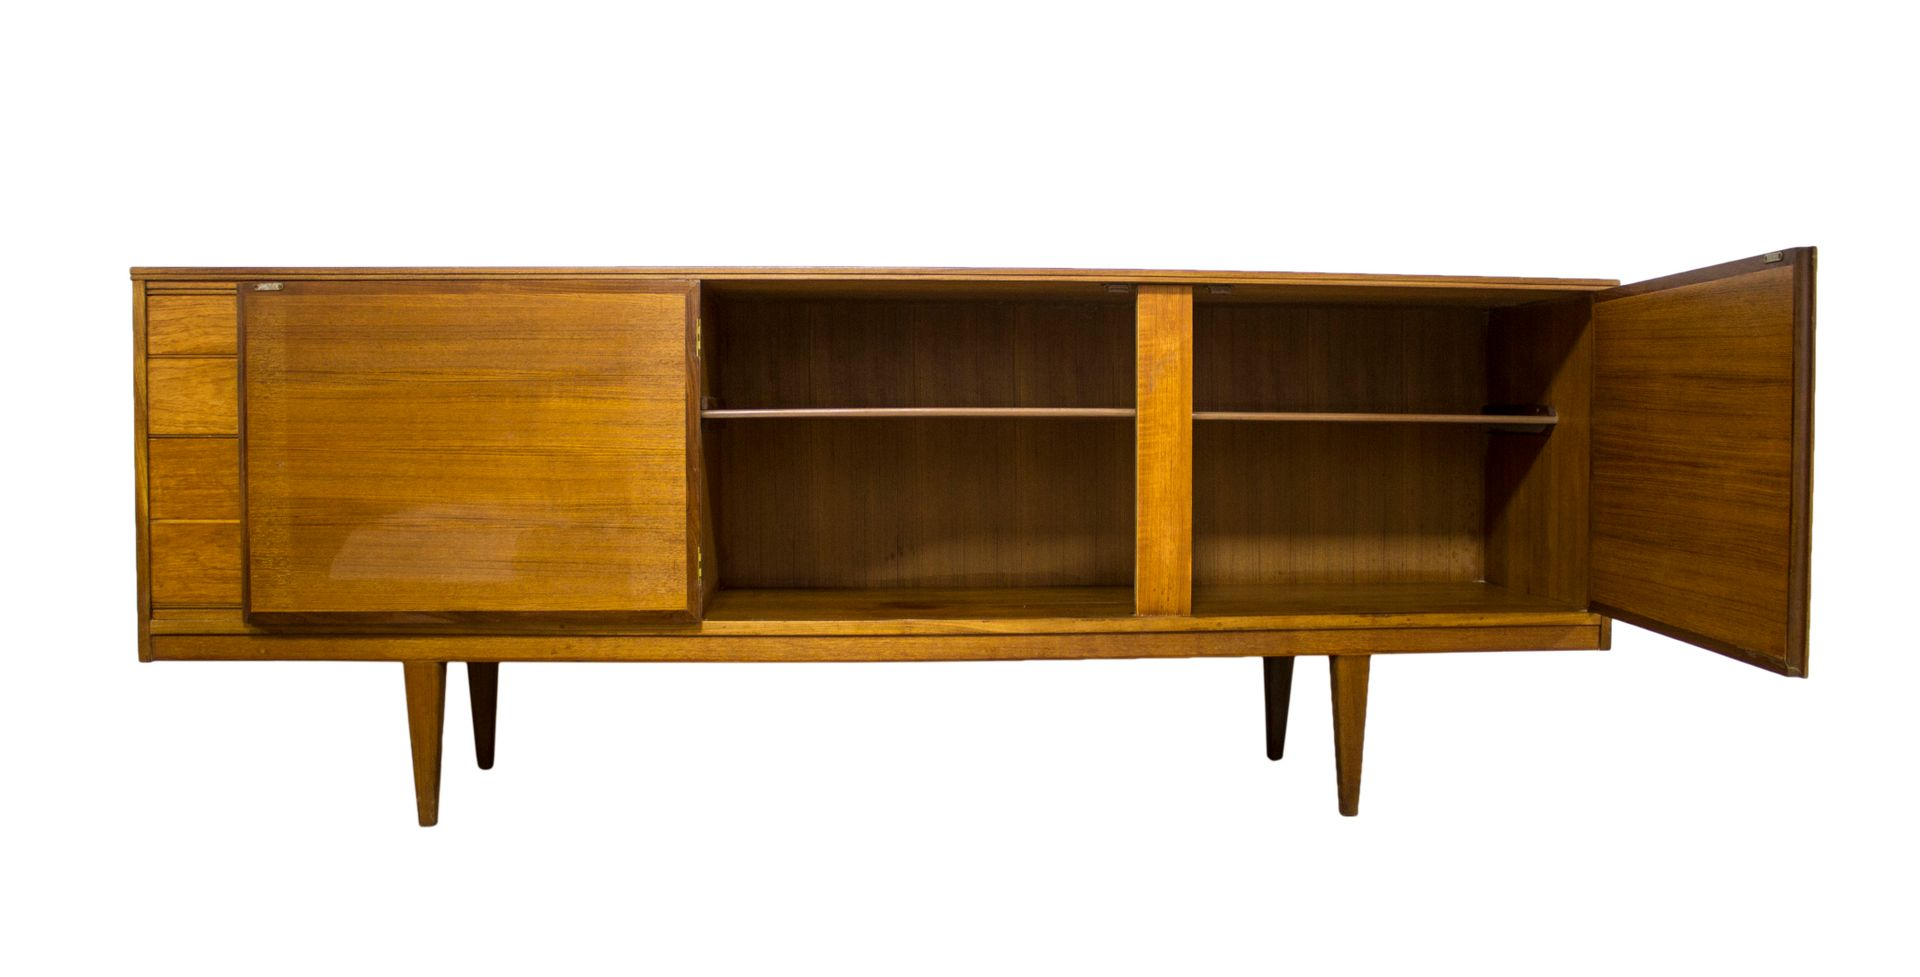 Mid century teak sideboard by alfred cox for sale at pamono - Sideboard mid century ...